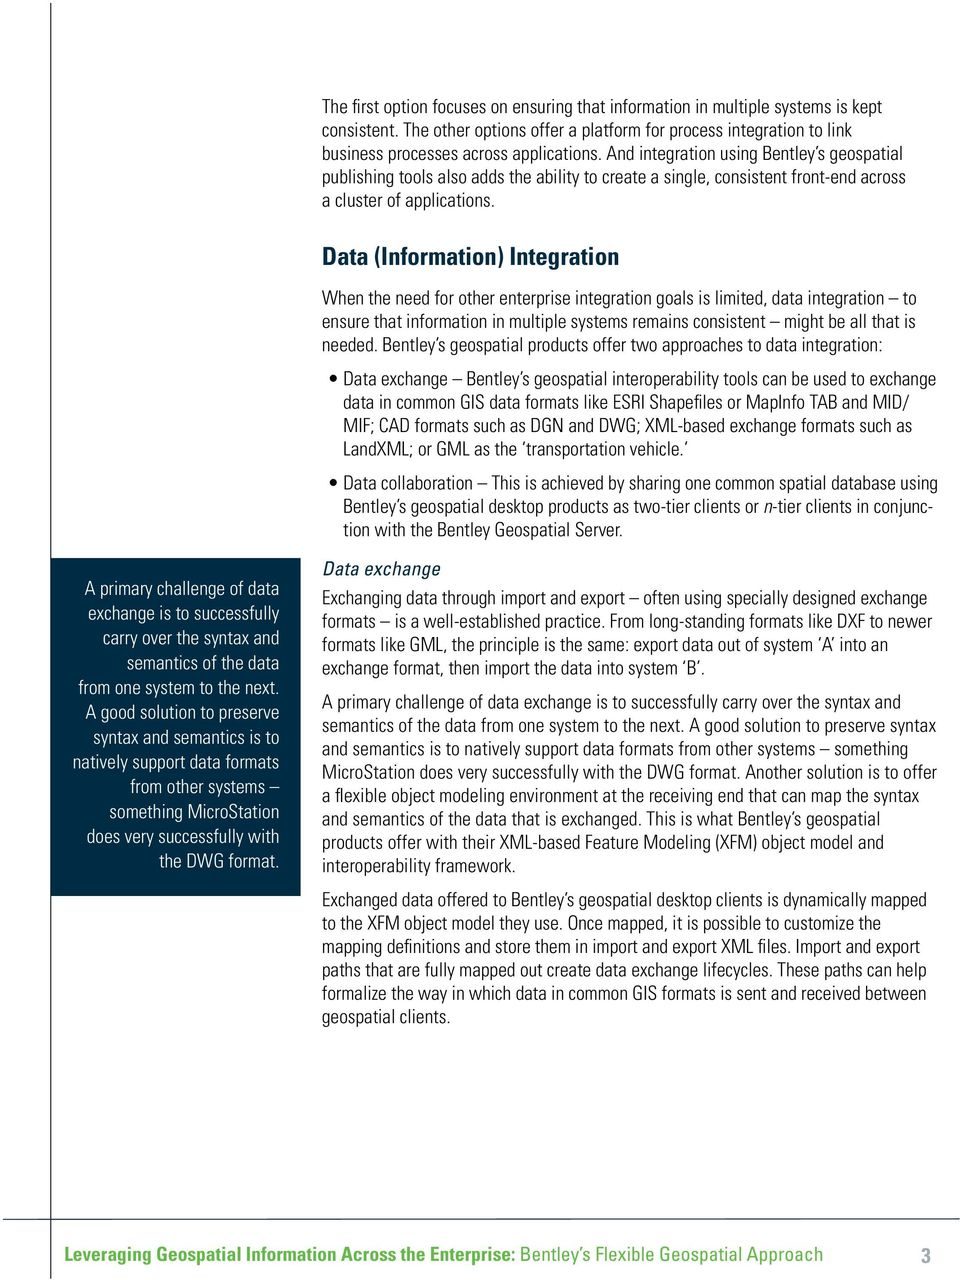 Data (Information) Integration When the need for other enterprise integration goals is limited, data integration to ensure that information in multiple systems remains consistent might be all that is